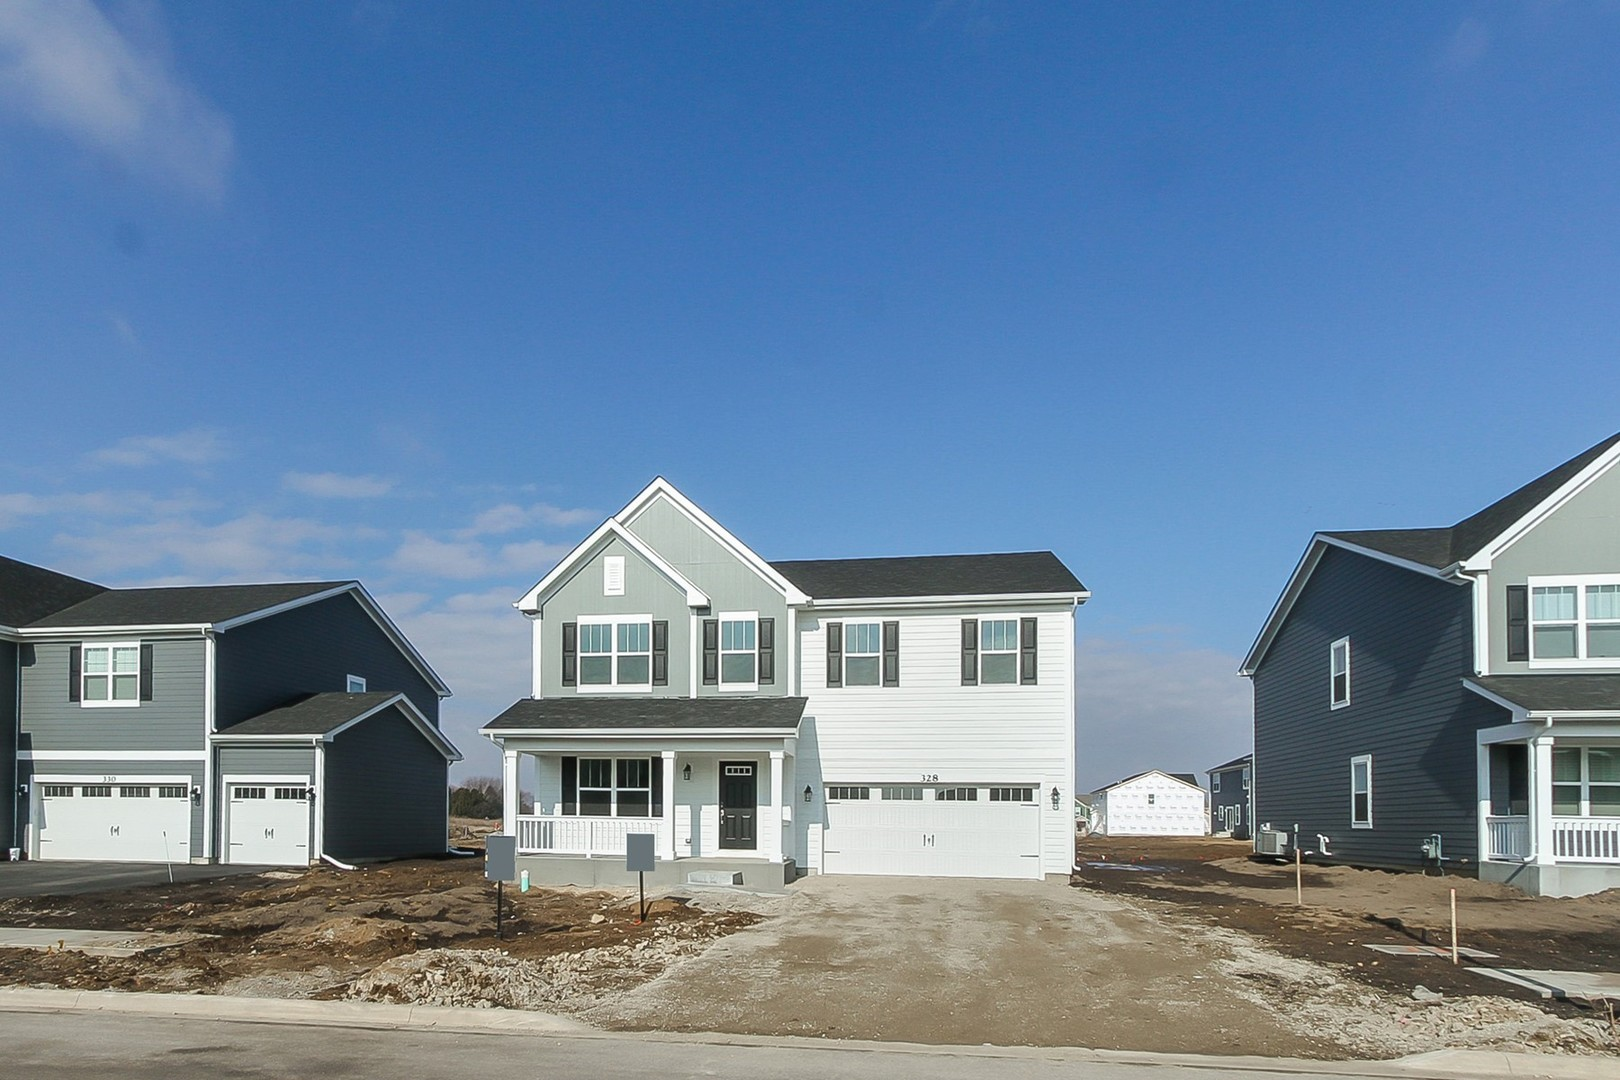 328 Garden Lot #10 Drive, Elgin in Kane County, IL 60124 Home for Sale